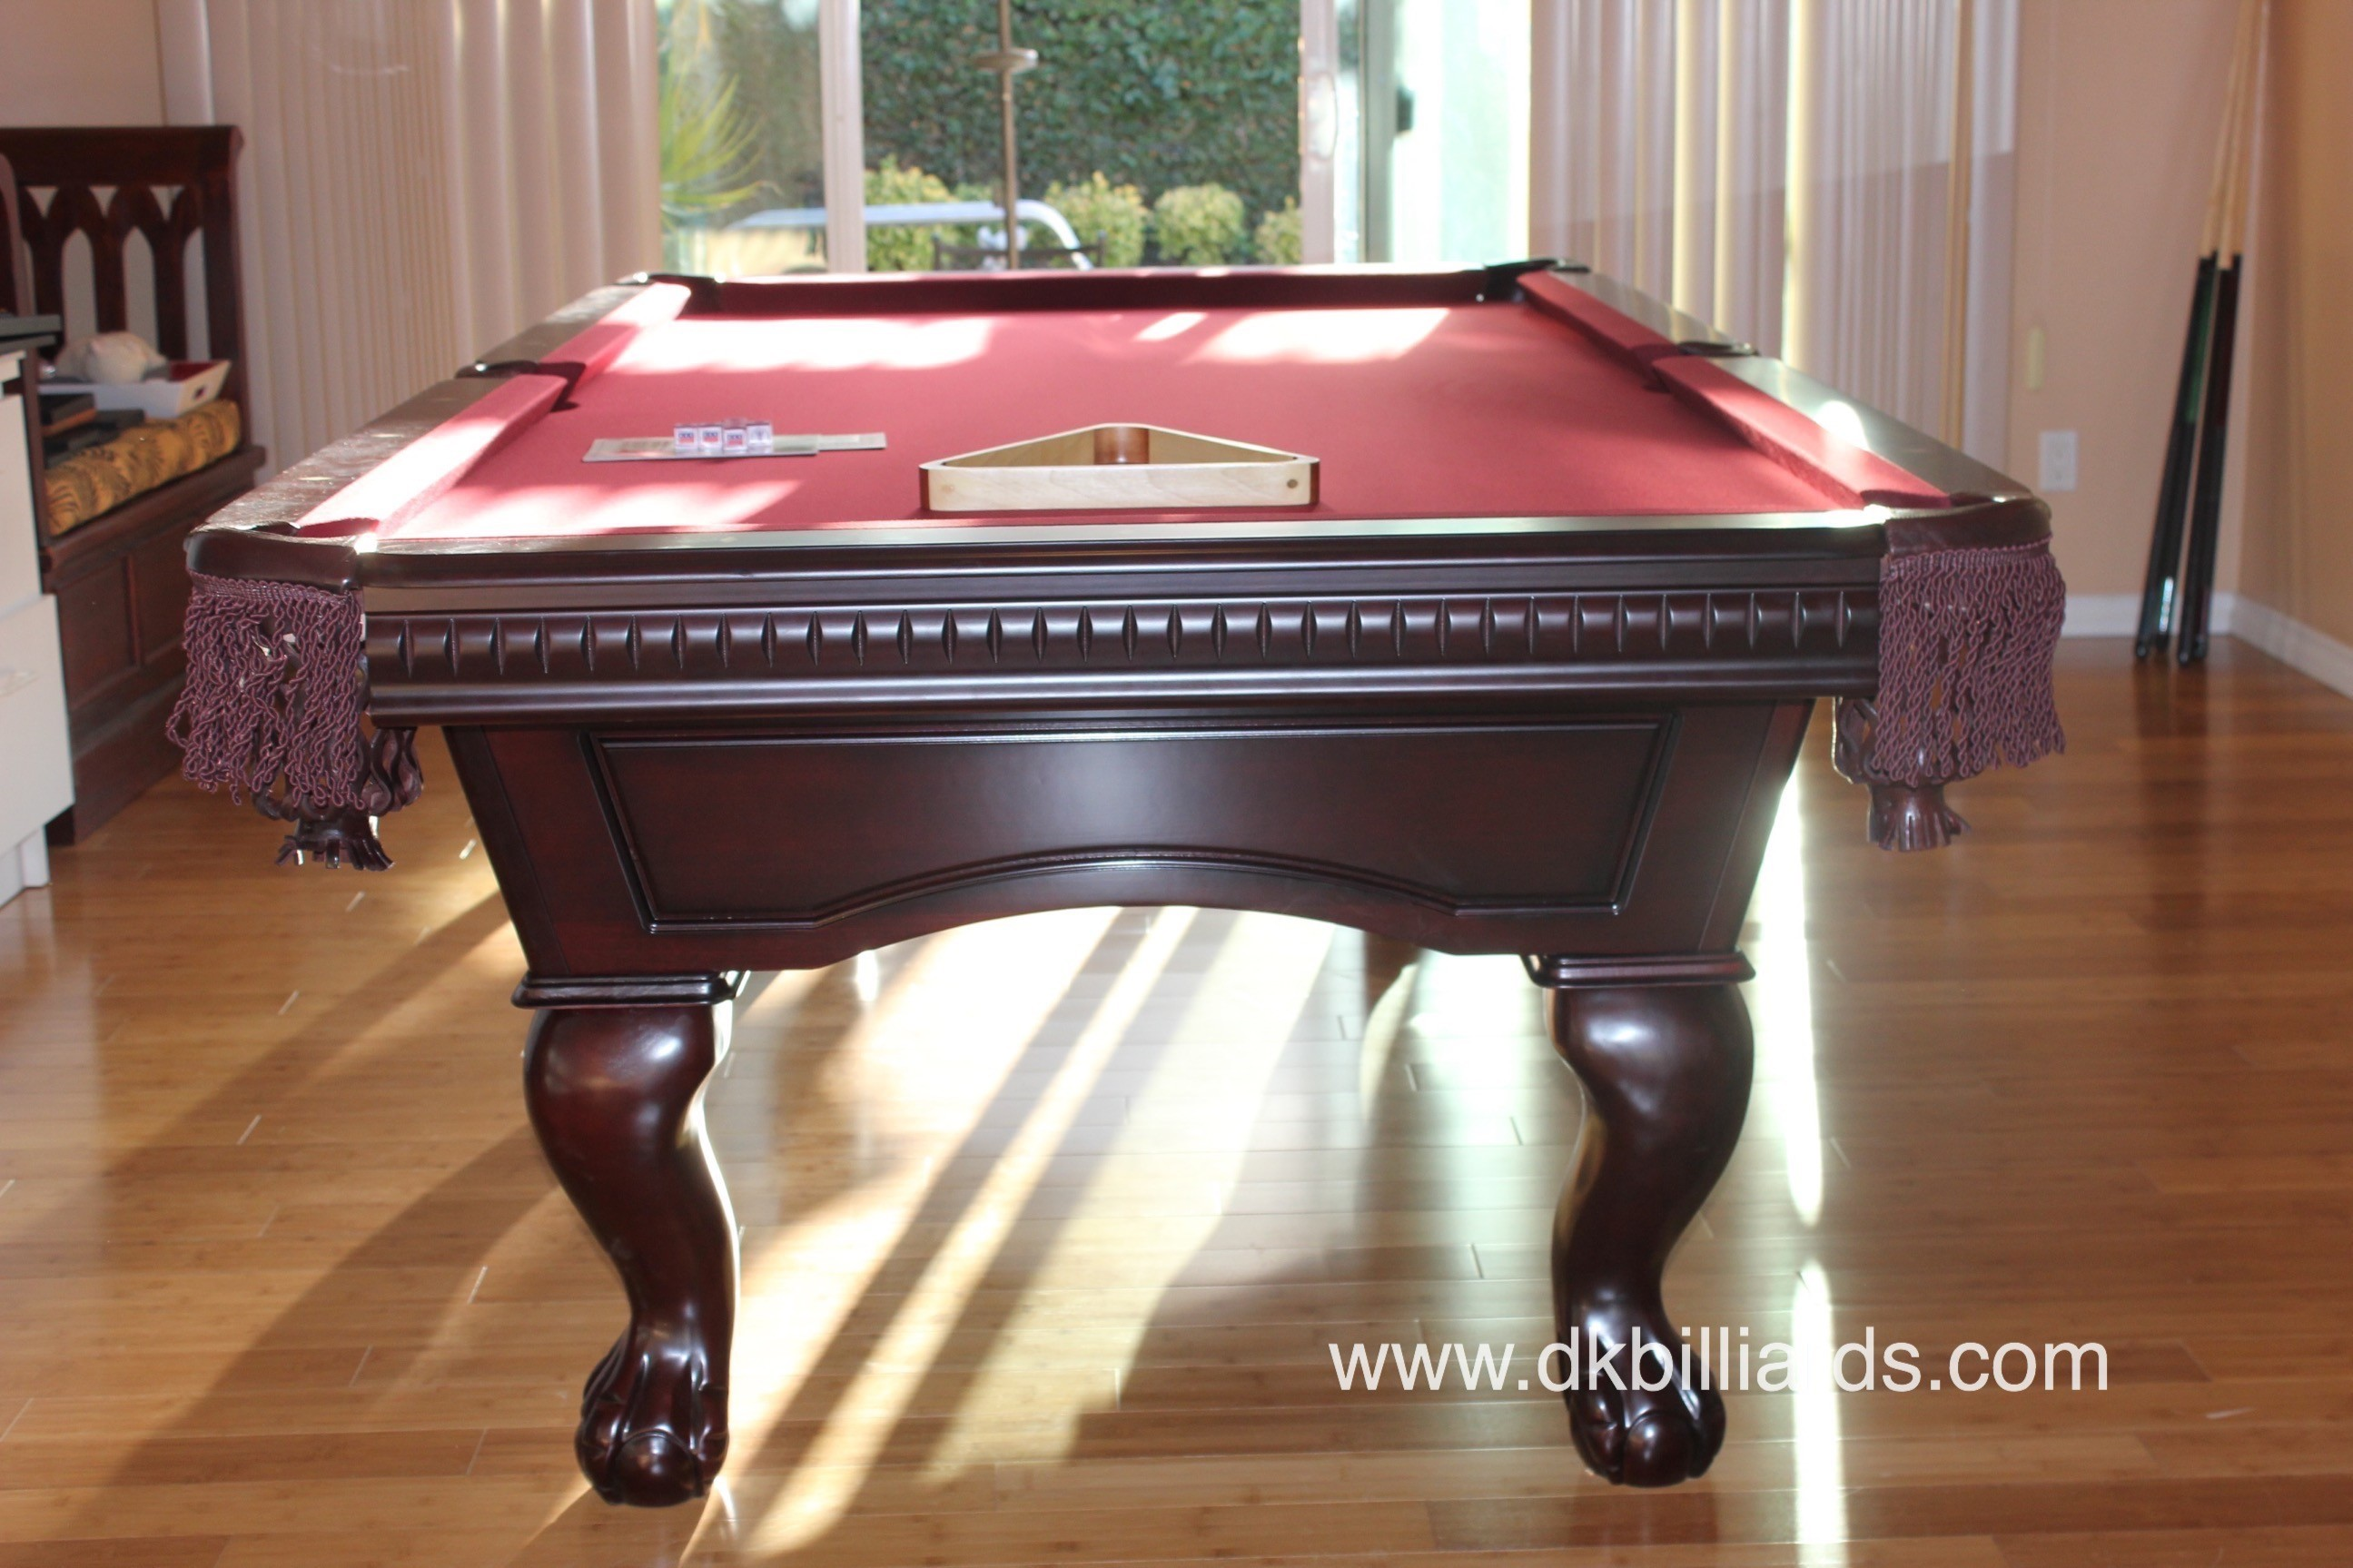 CL Bailey Pool Tables Archives Pool Table Service Billiard - Cl bailey pool table